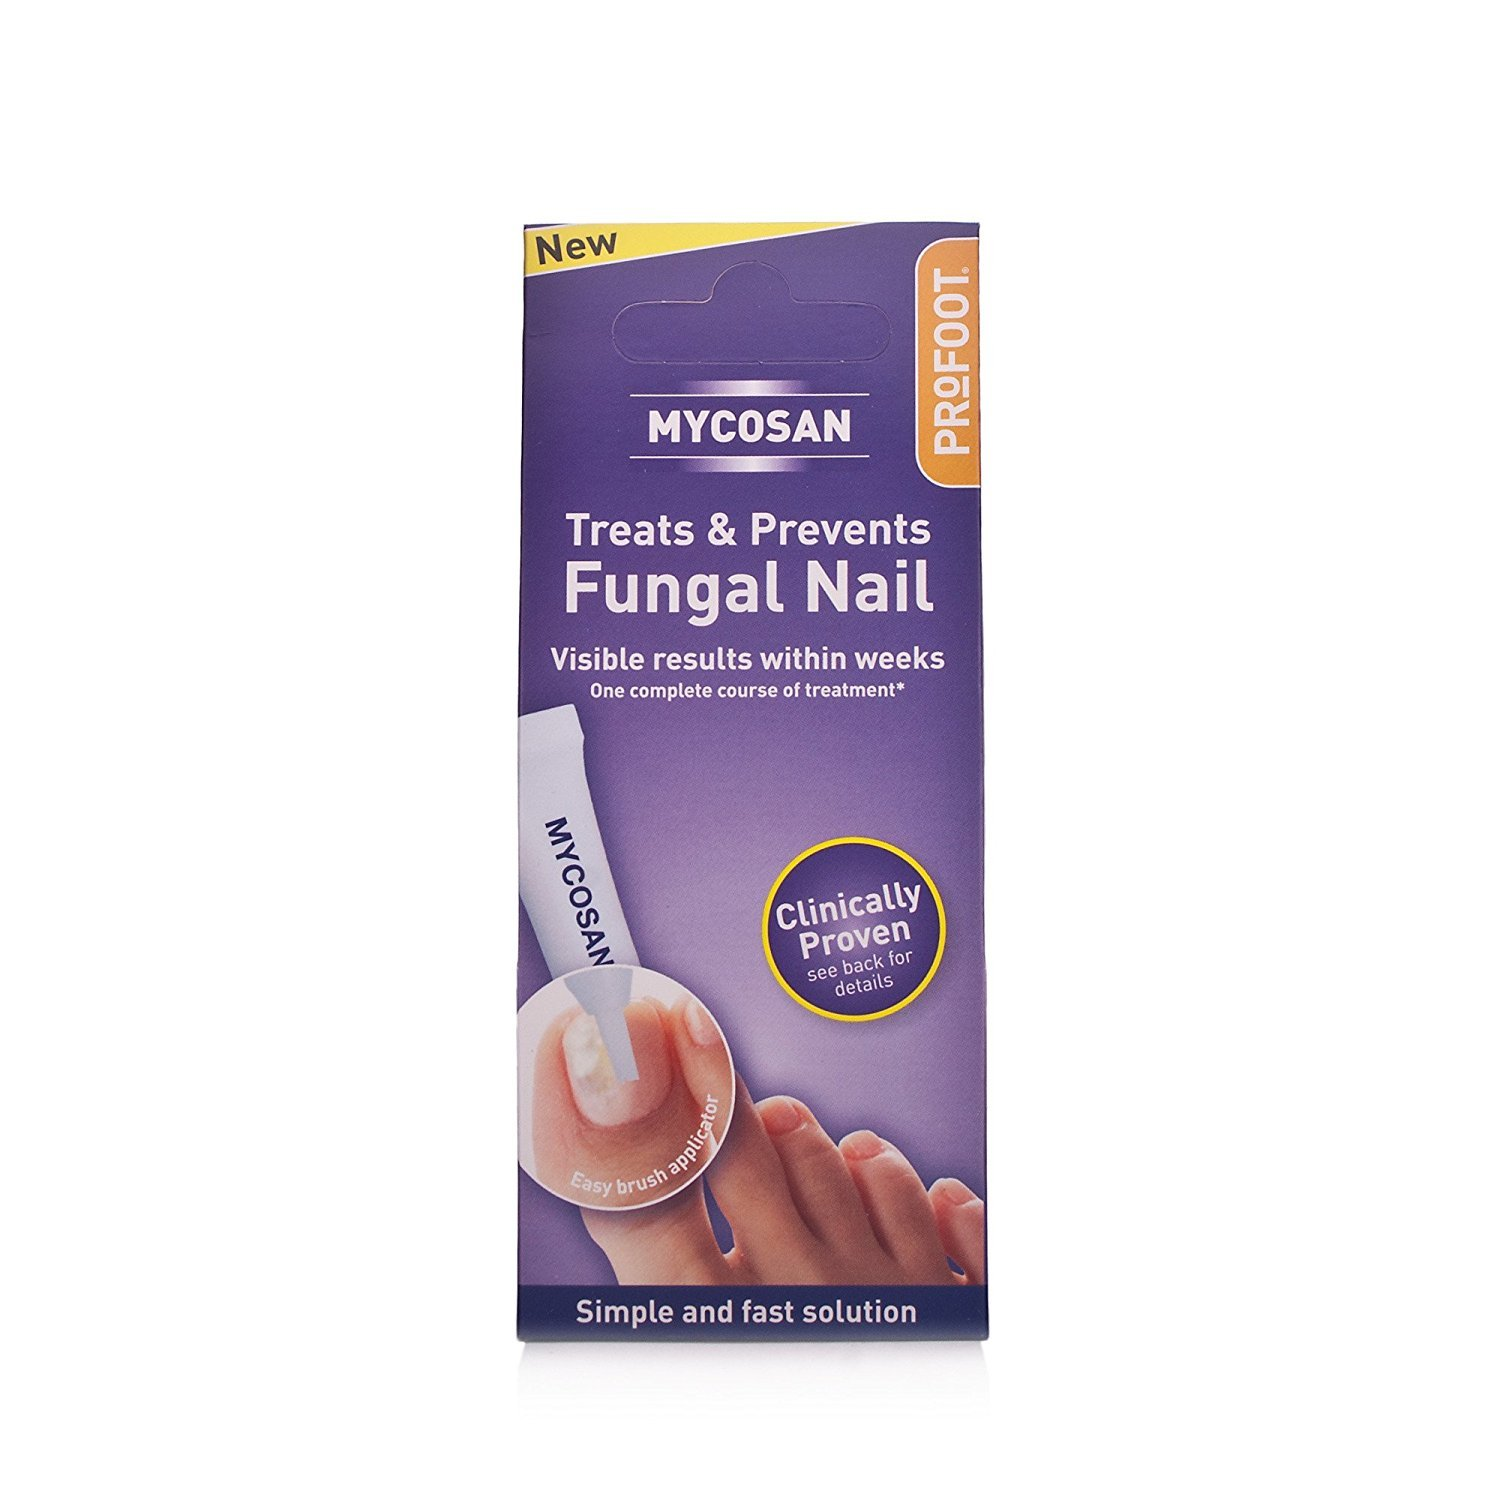 Profoot Mycosan Fungal Nail Treatment: Amazon.co.uk: Health ...